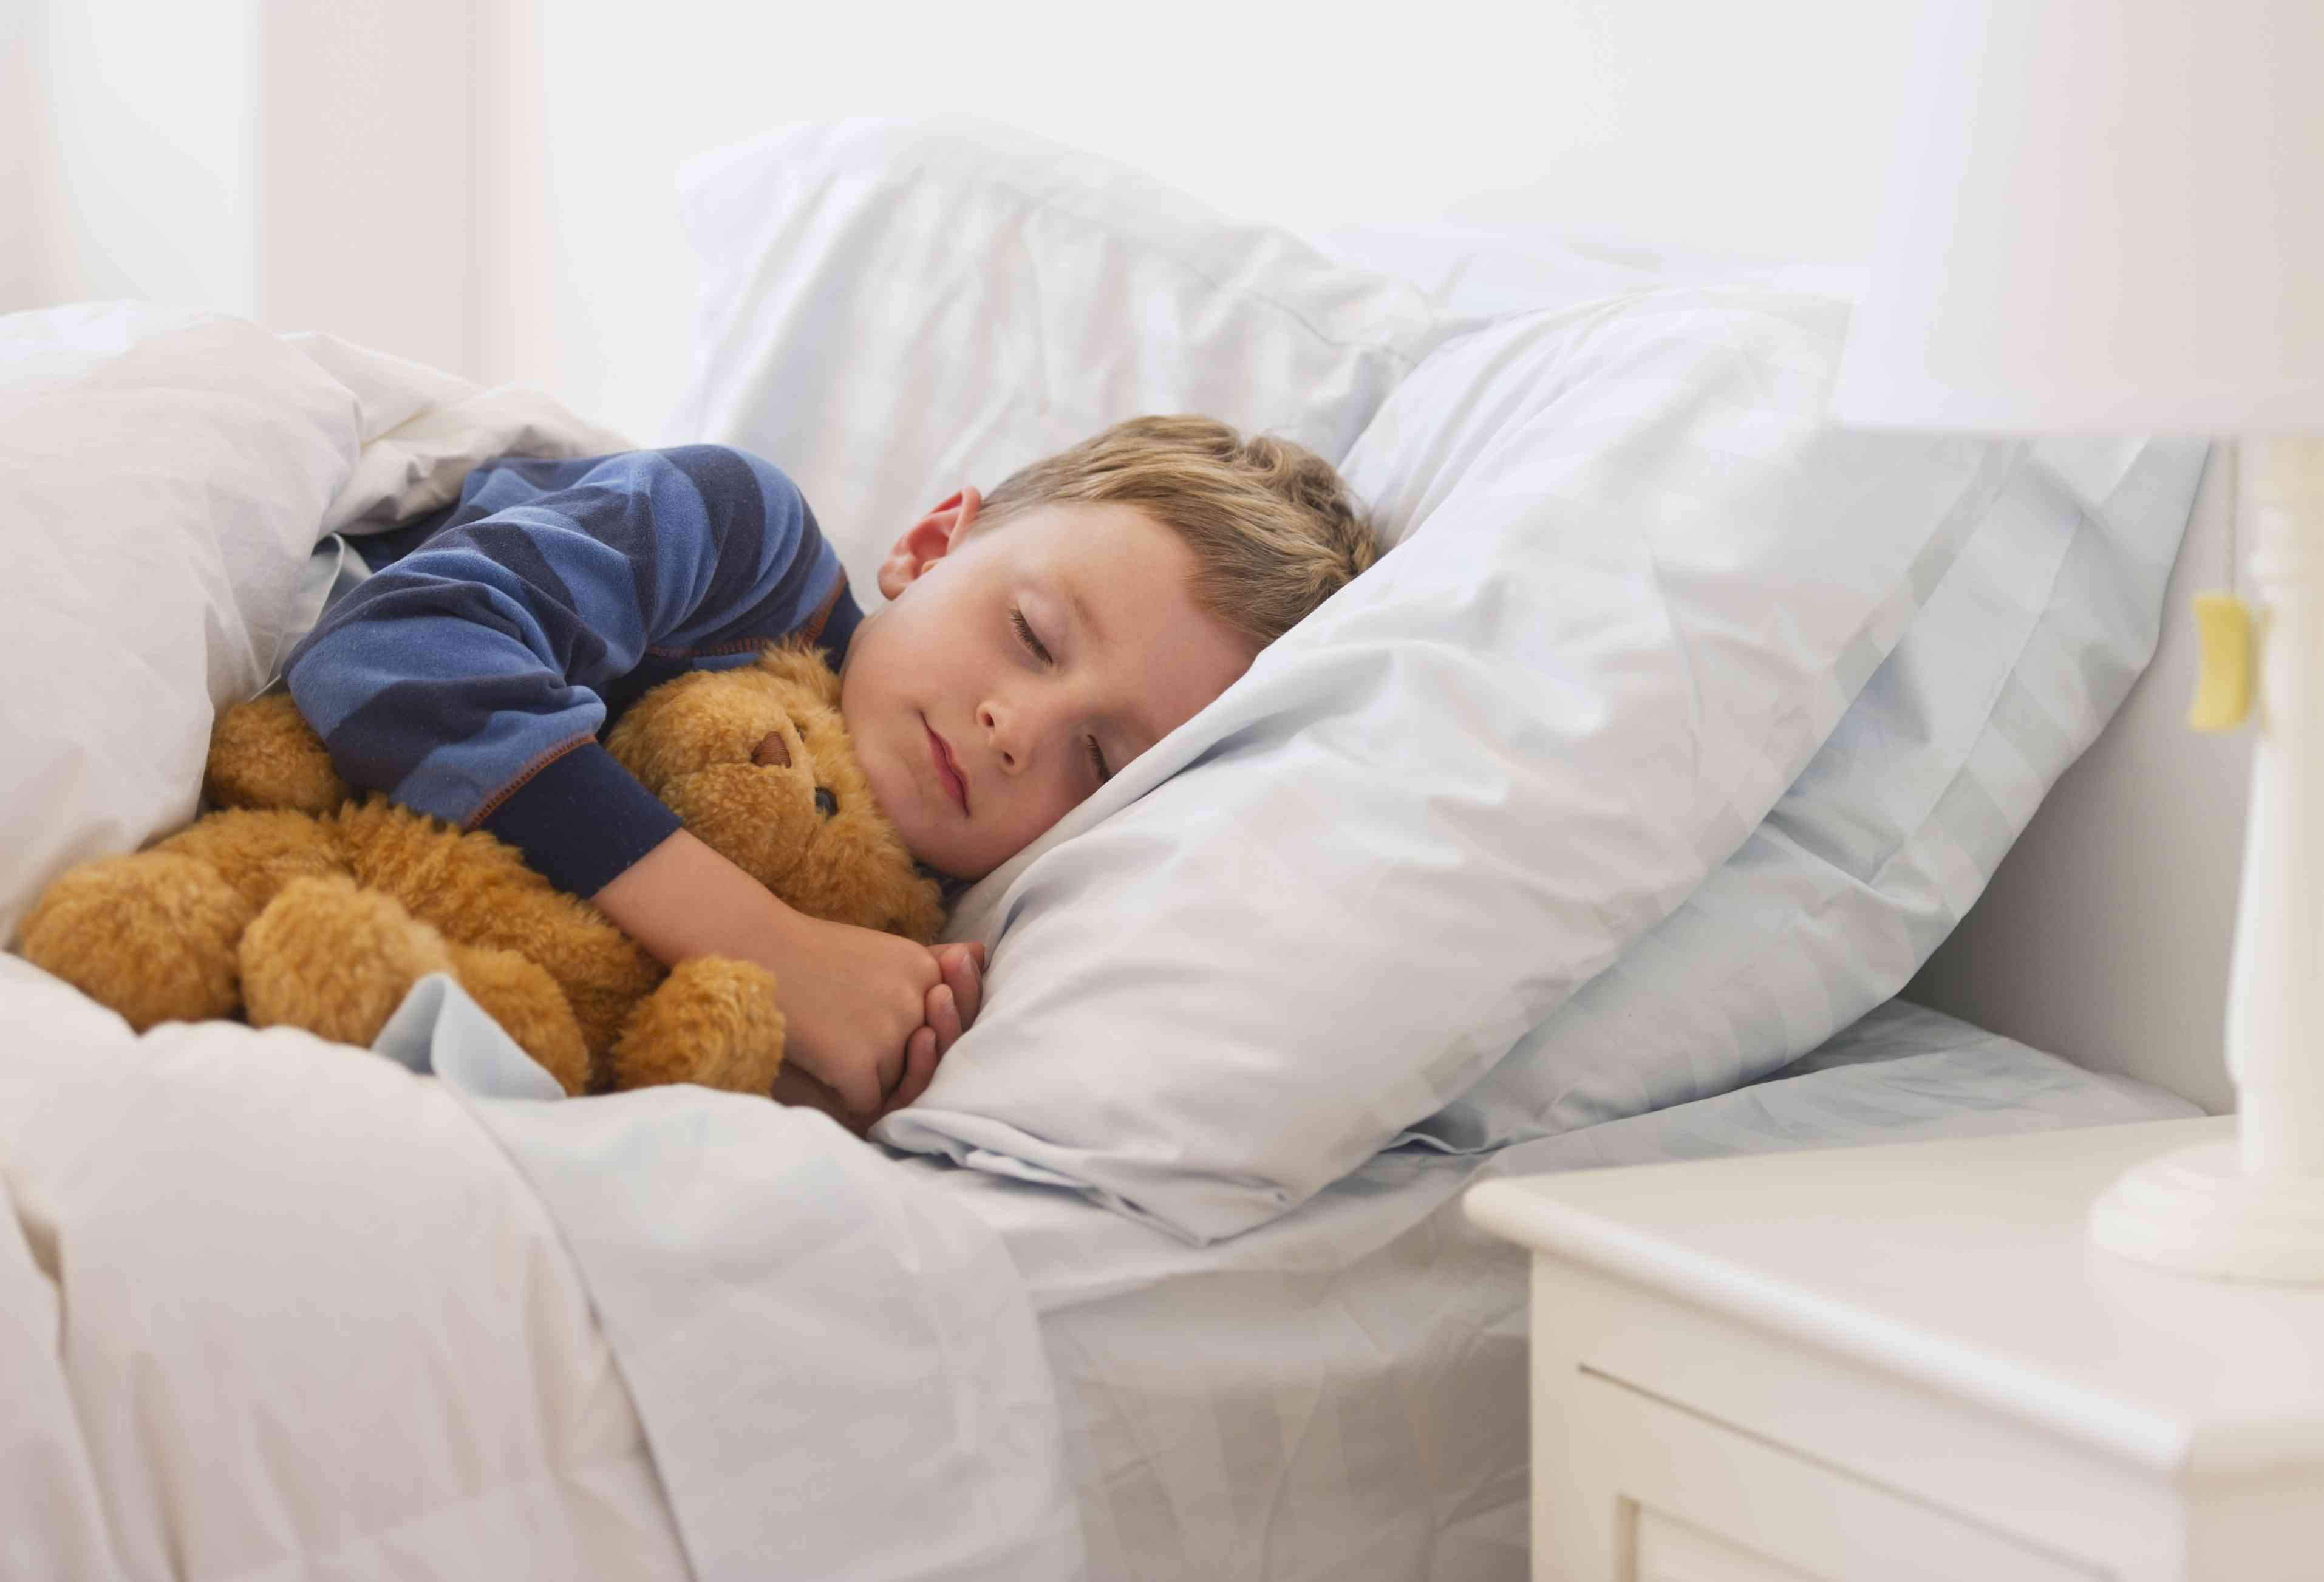 A boy sleeping in his bed with his teddy bear